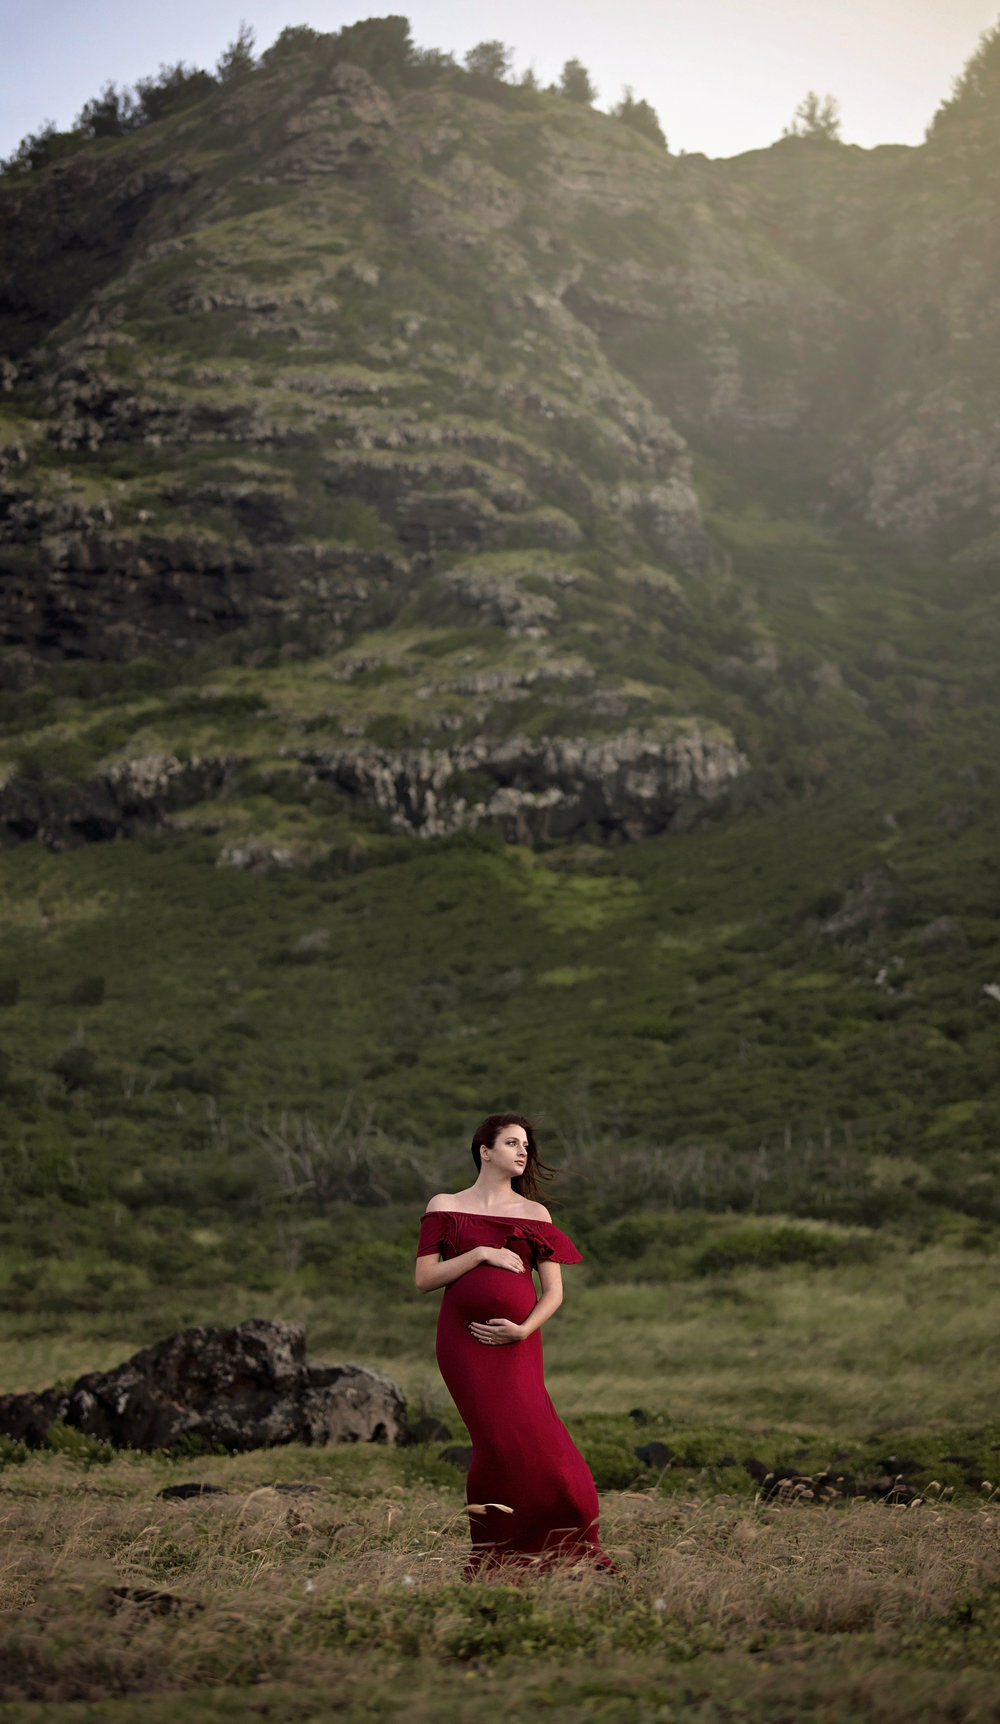 Location was at Kaena point beach. Dramatic mountains in the background are the perfect backdrop for your maternity sessions here on oahu hawaii